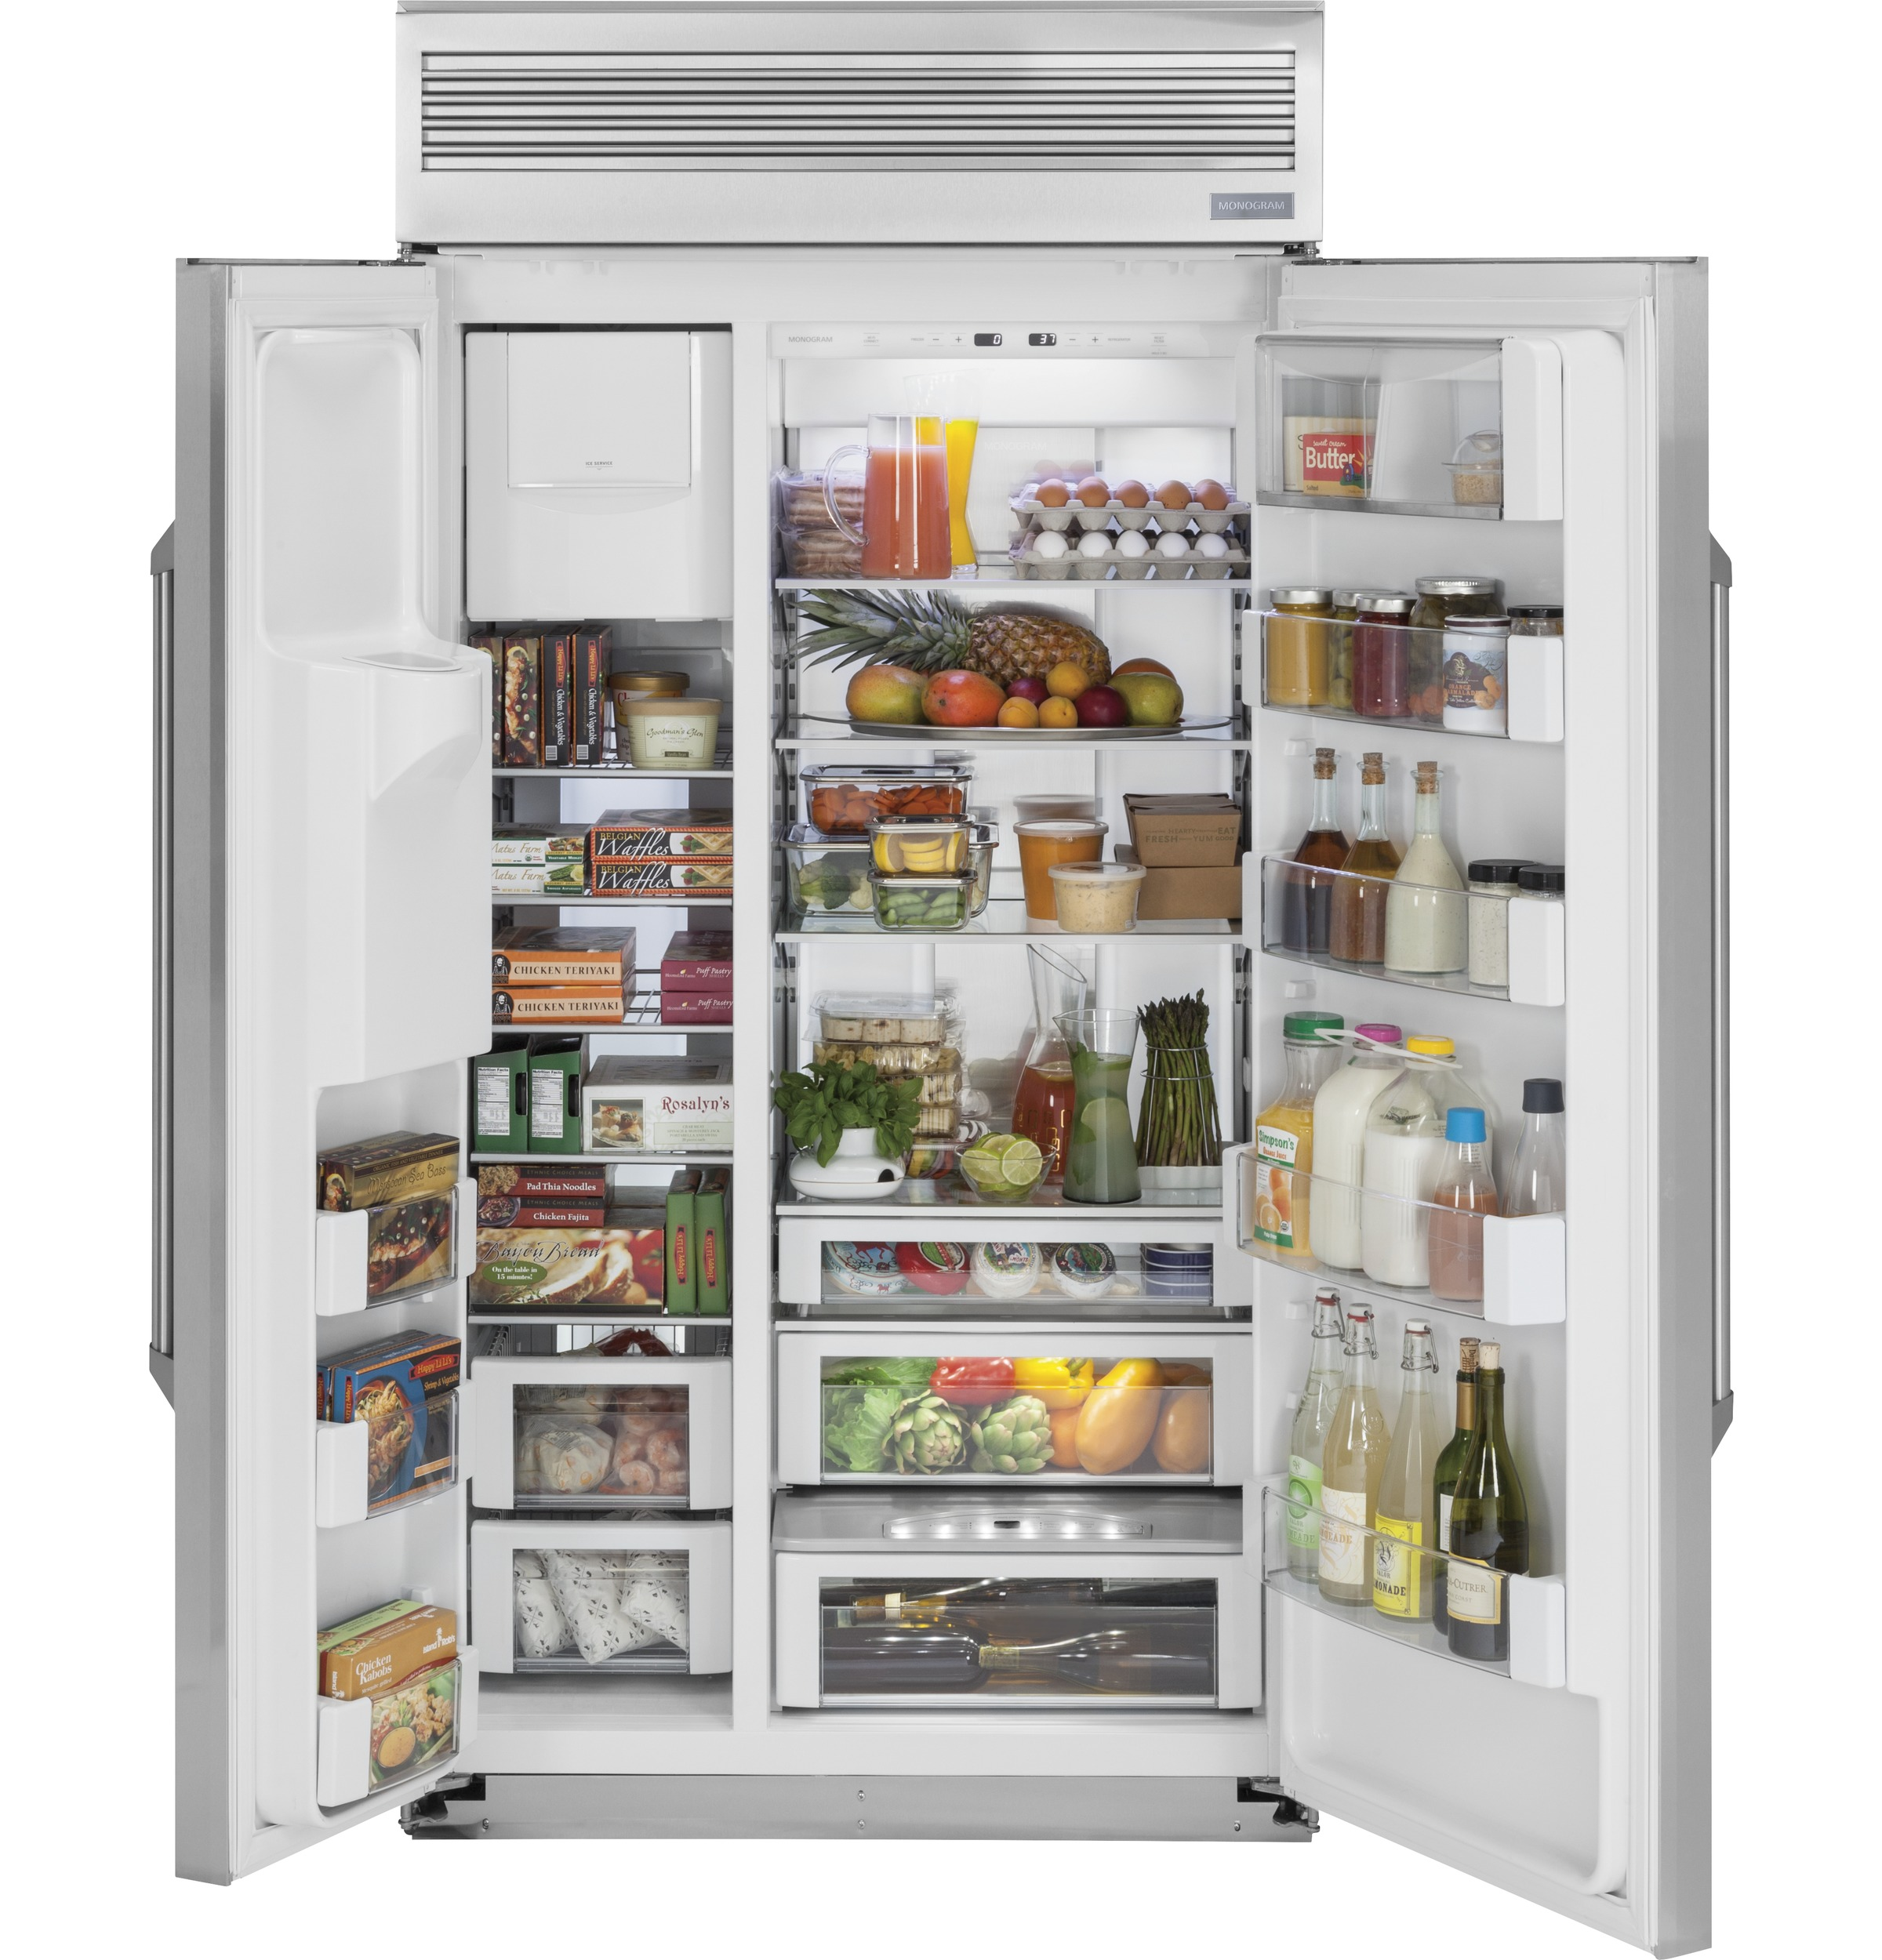 How To Deep Clean Your Ge Monogram Fridge Every 3 4 Months